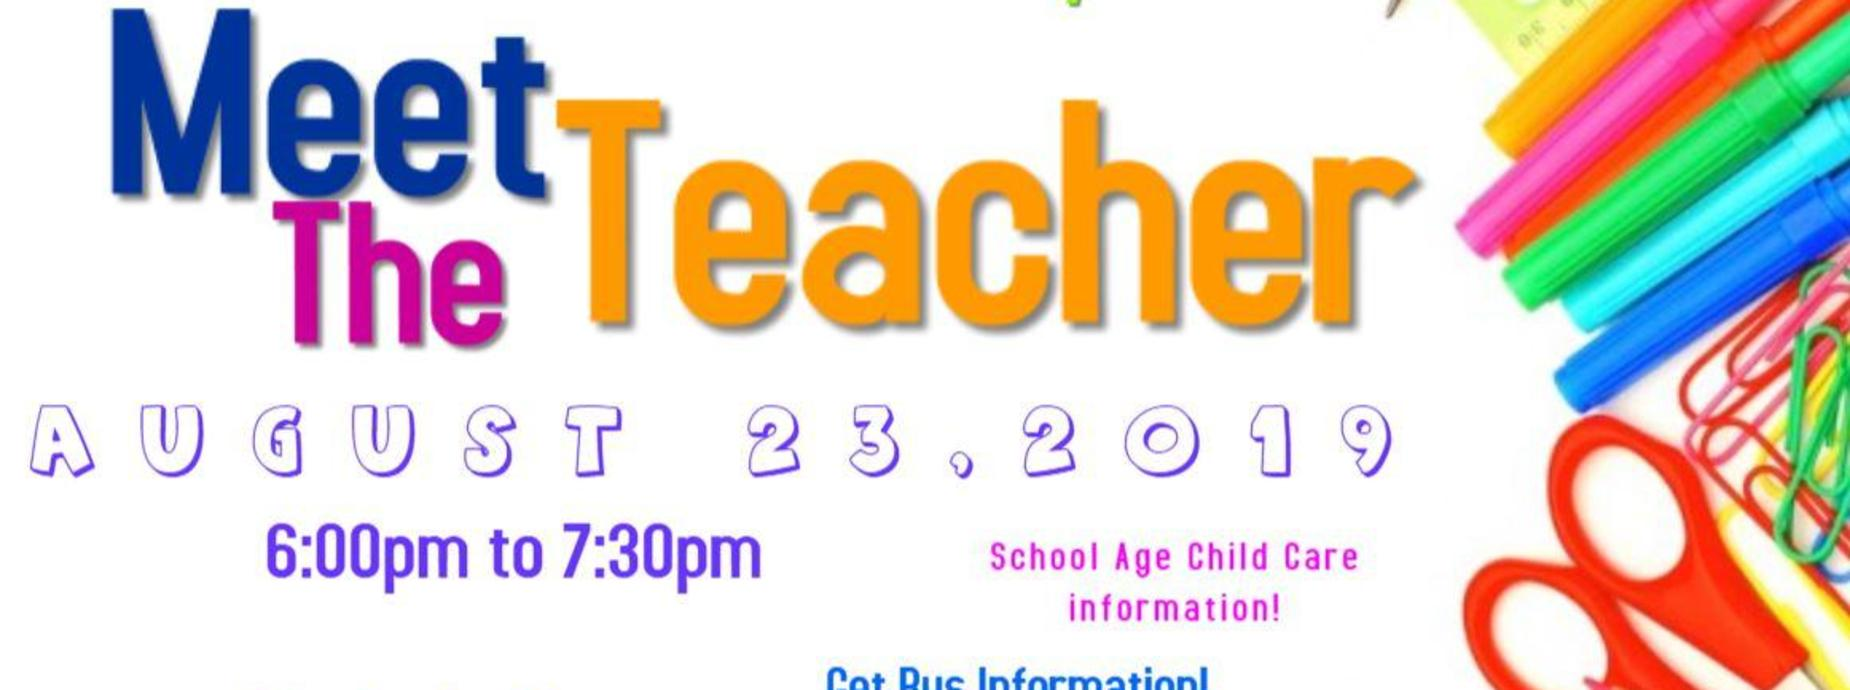 Meet the Teacher Night, August 23rd, 6pm to 7:30pm